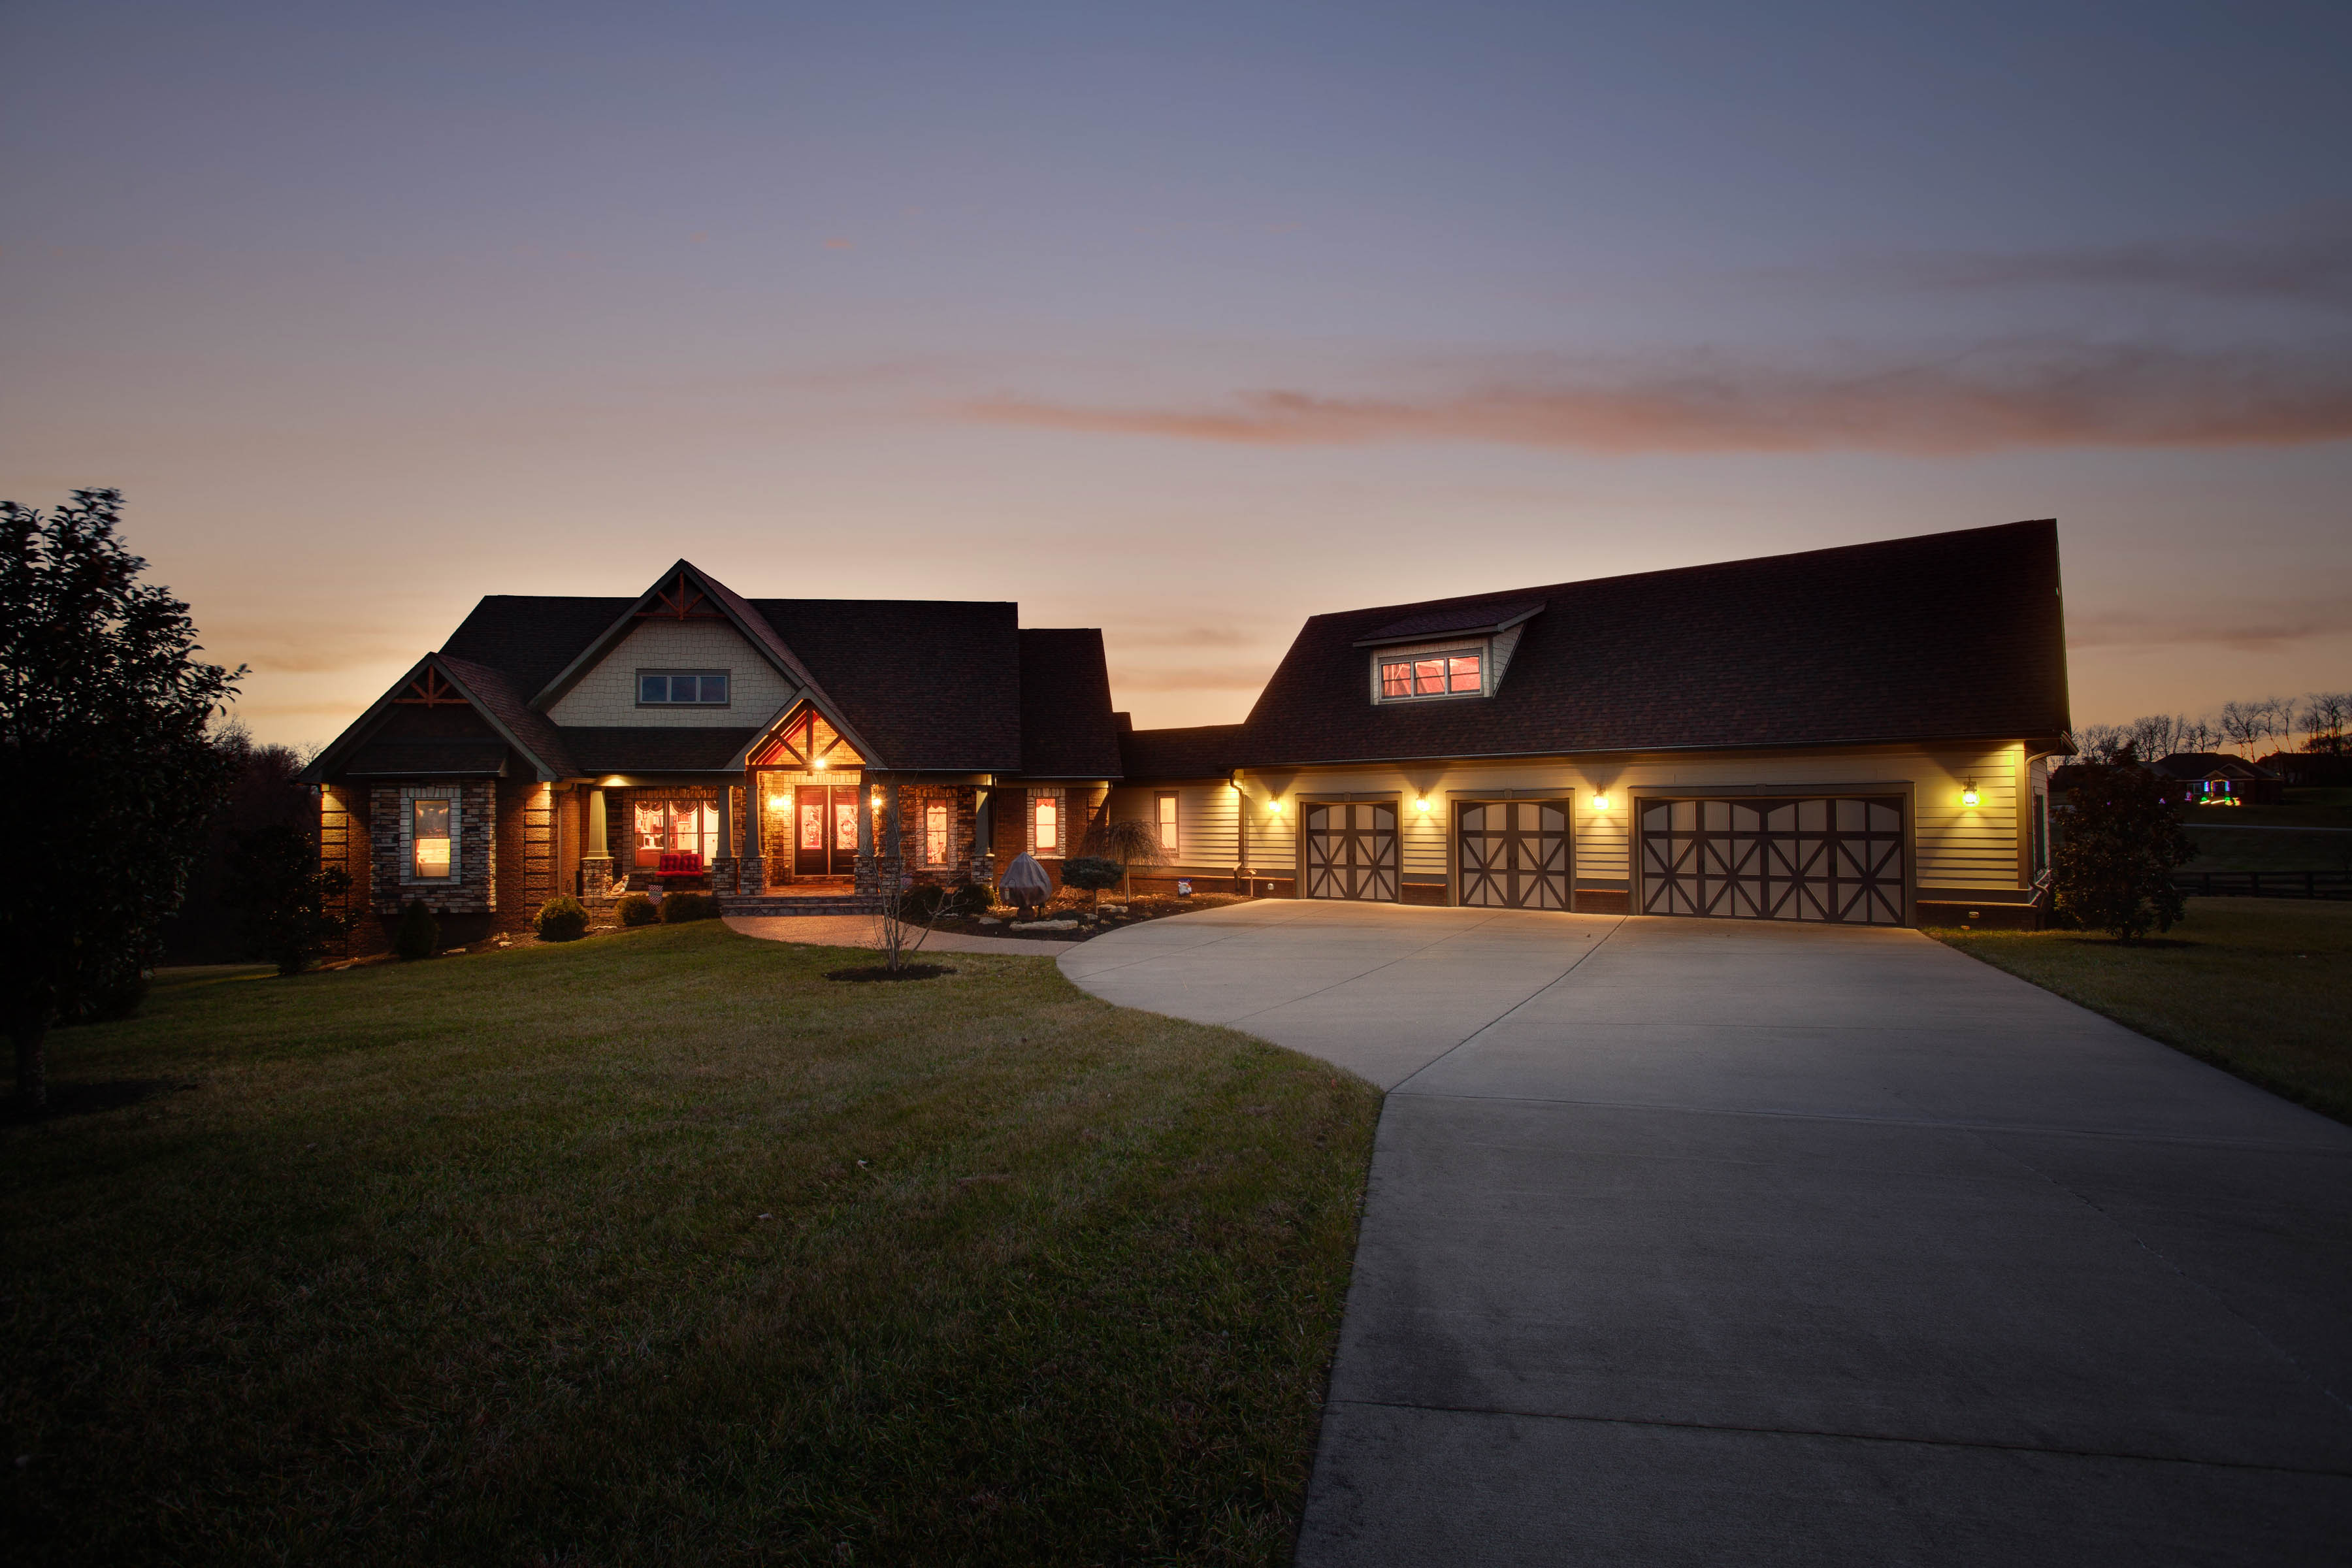 House of the Week: Fisherville, KY